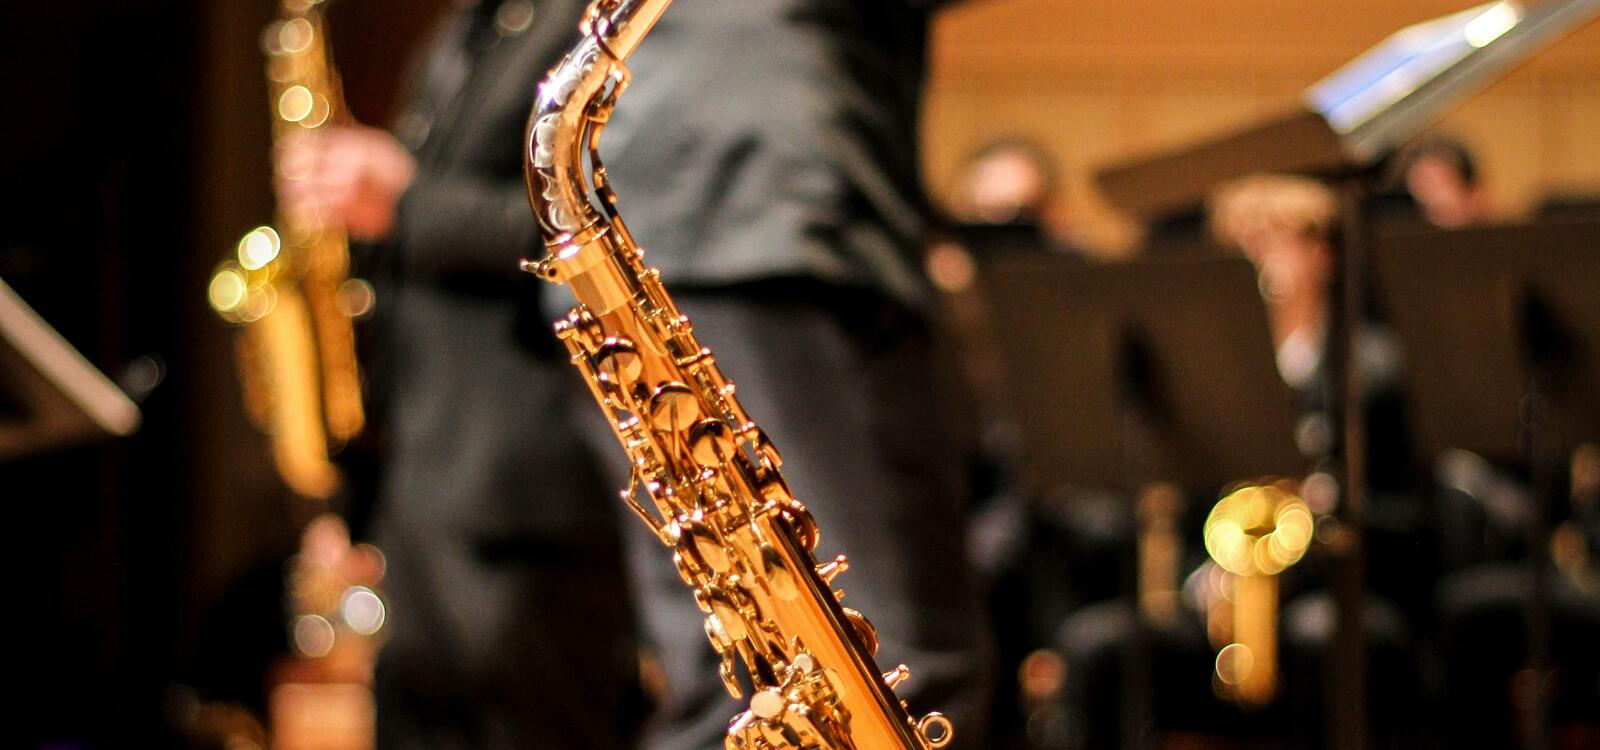 A photo of a shiny saxophone, and in the background a conducter is leading an ensemble